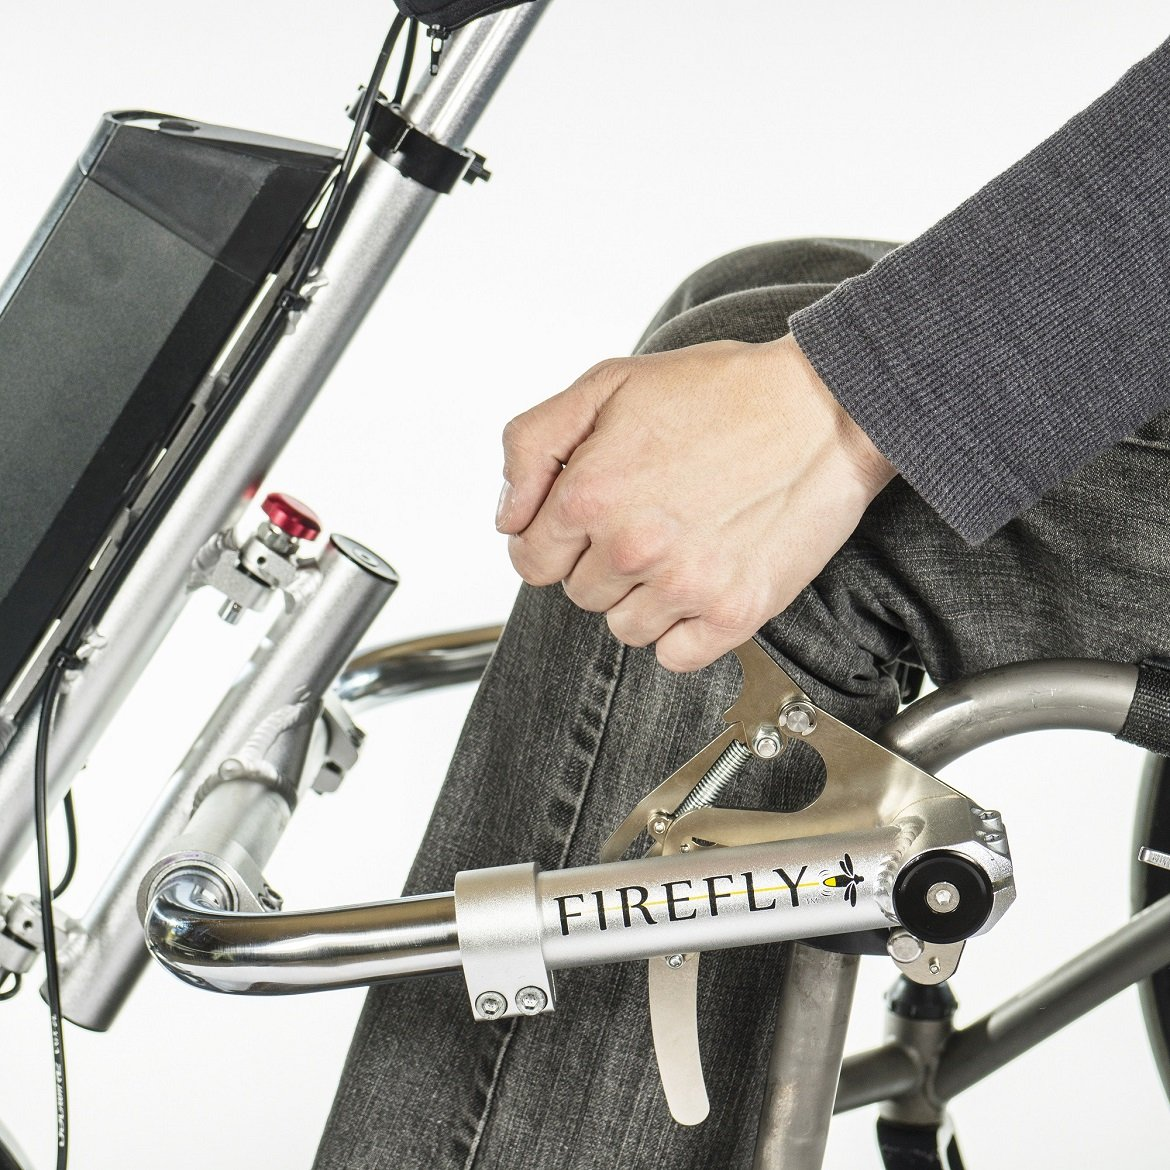 Electric bike adaption for wheel chair youtube - Amazon Com Firefly Electric Attachable Handcycle For Wheelchair Health Personal Care